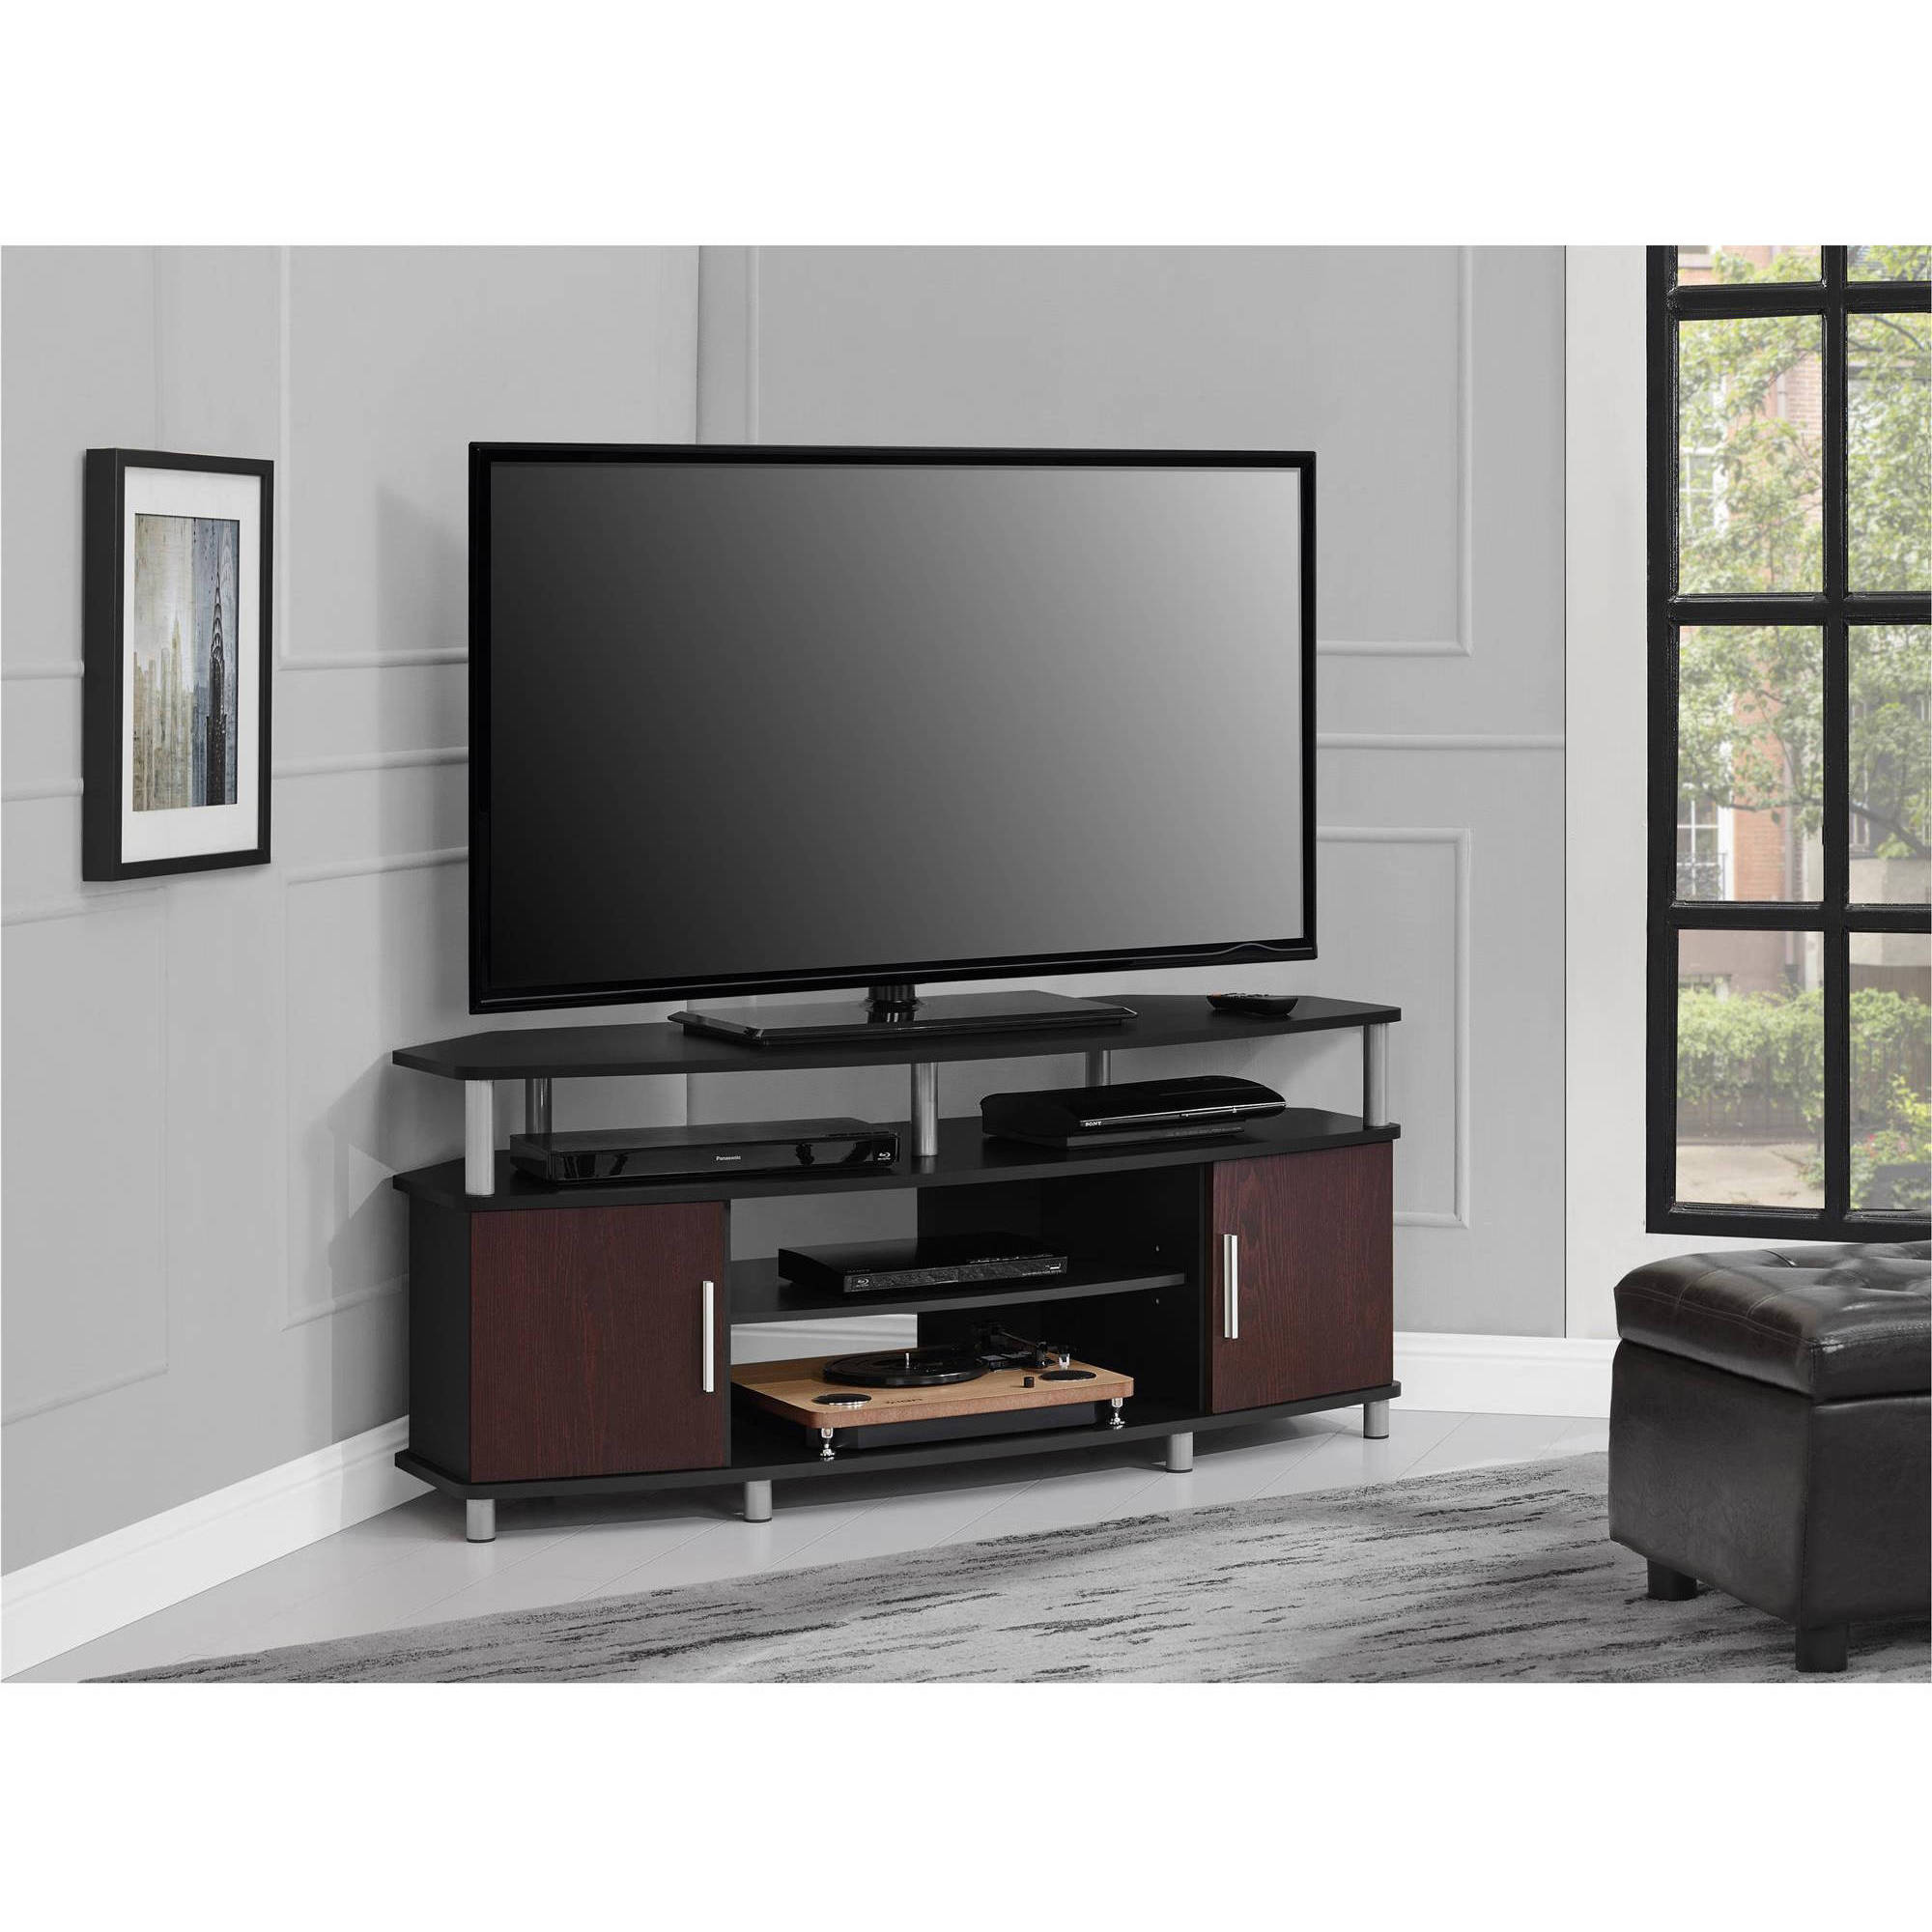 tv stand living room modern look ameriwood home carson corner for tvs up to 50 wide black cherry walmart com